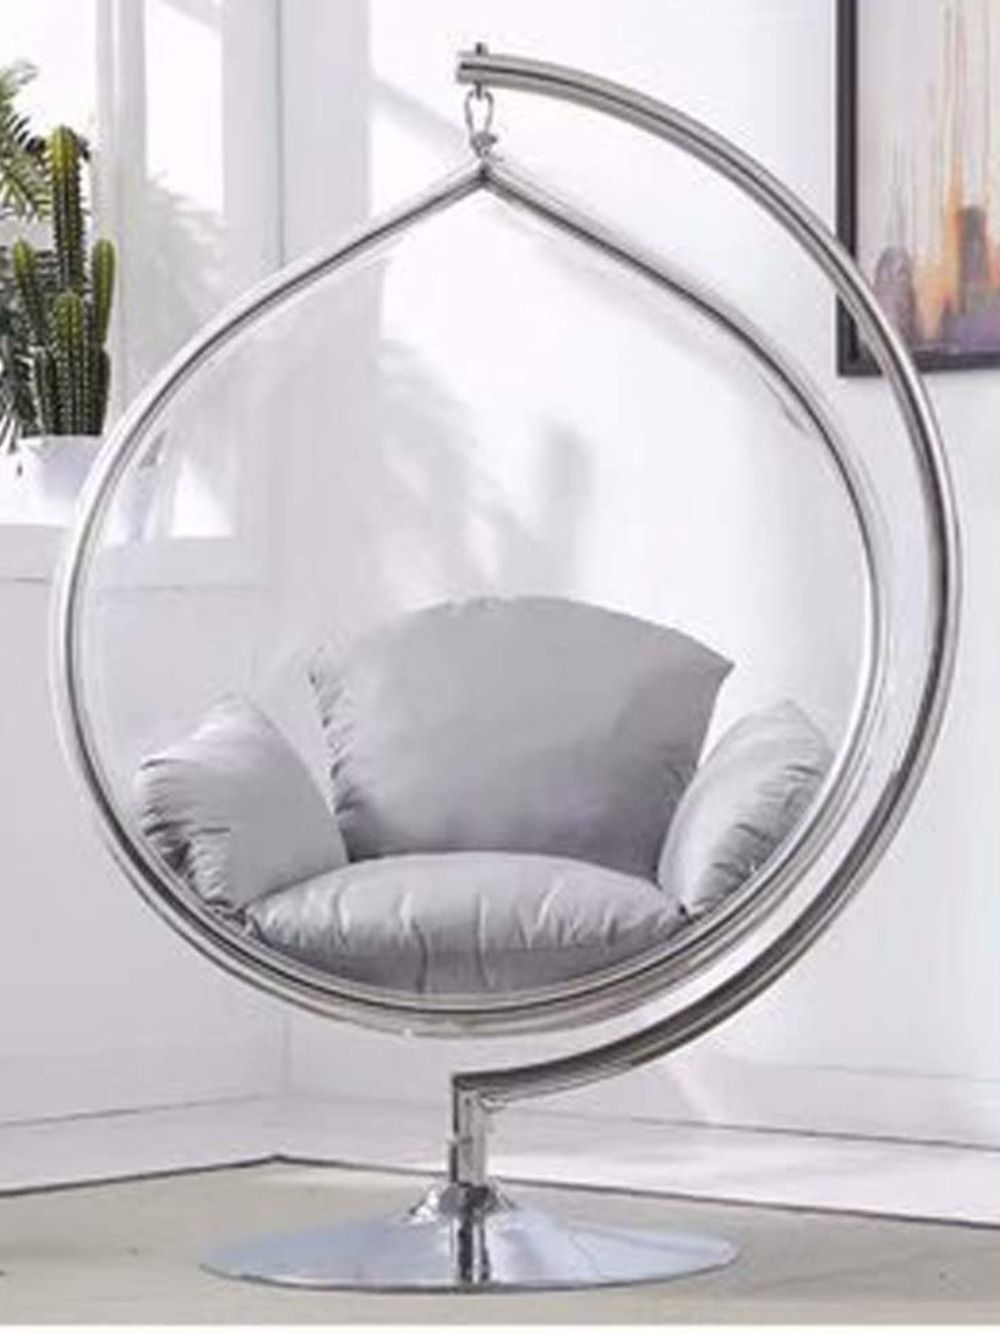 Acrylic Bubble Hanging Chair For Modern Decor In 2020 Hanging